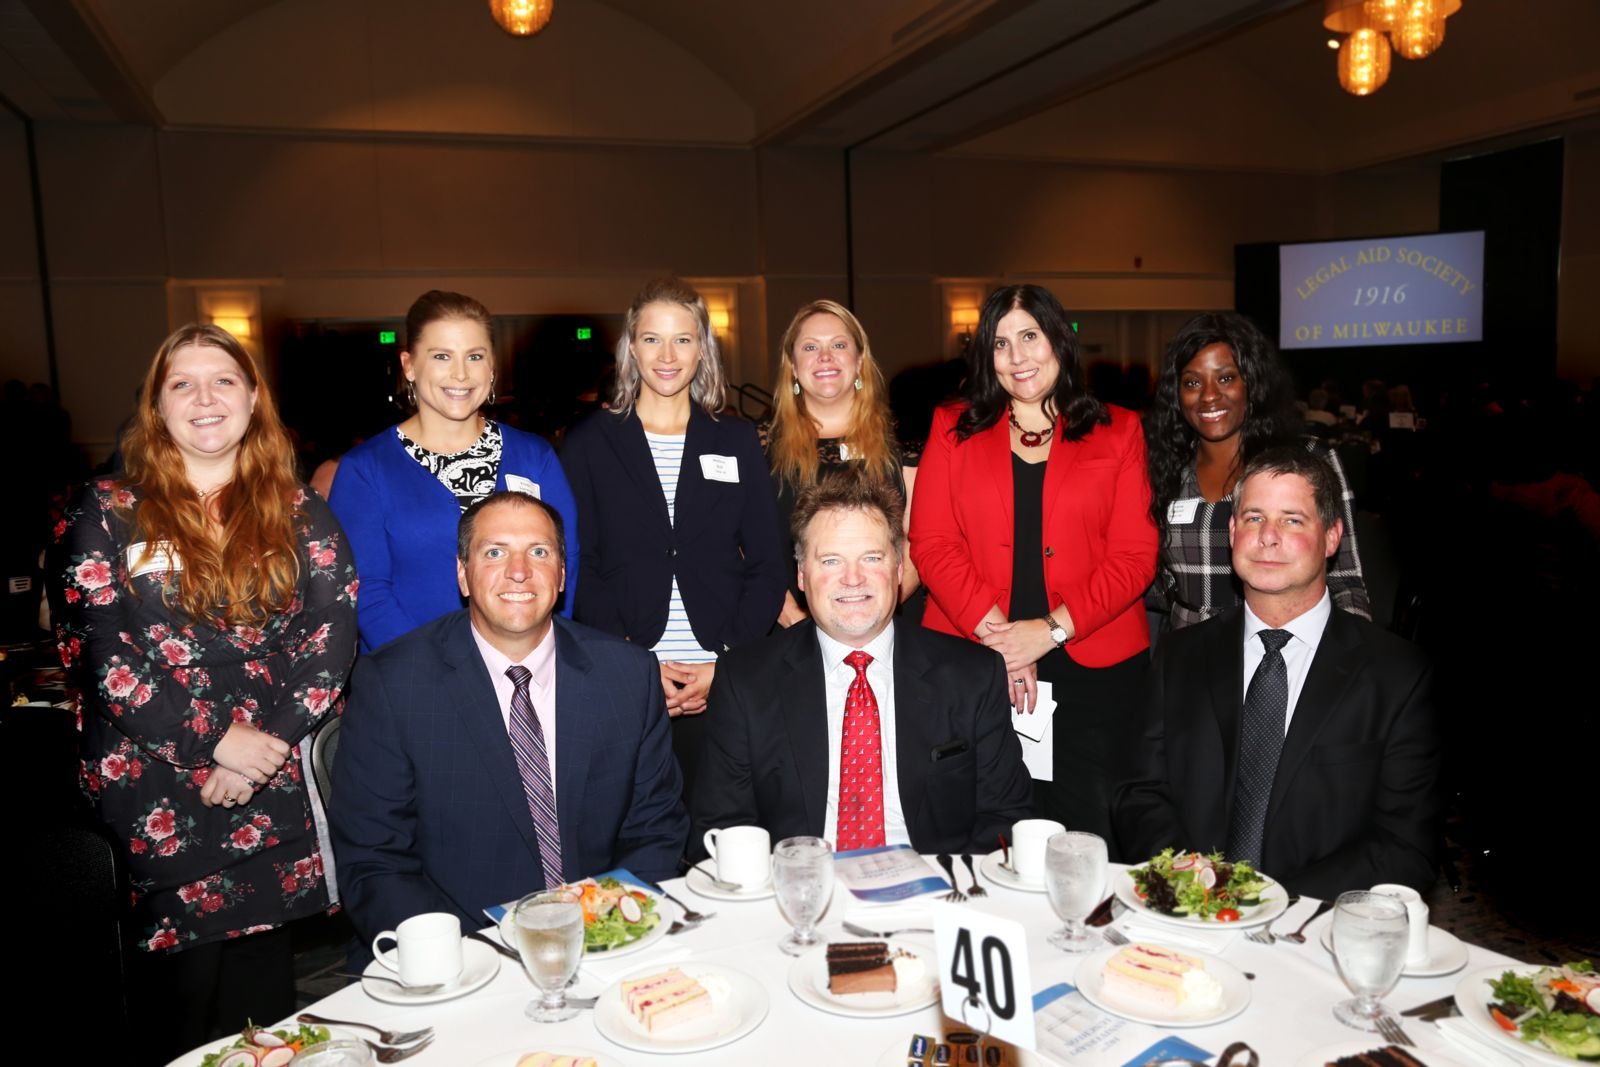 Members celebrating the Legal Aid Society of Milwaukee at anniversary party